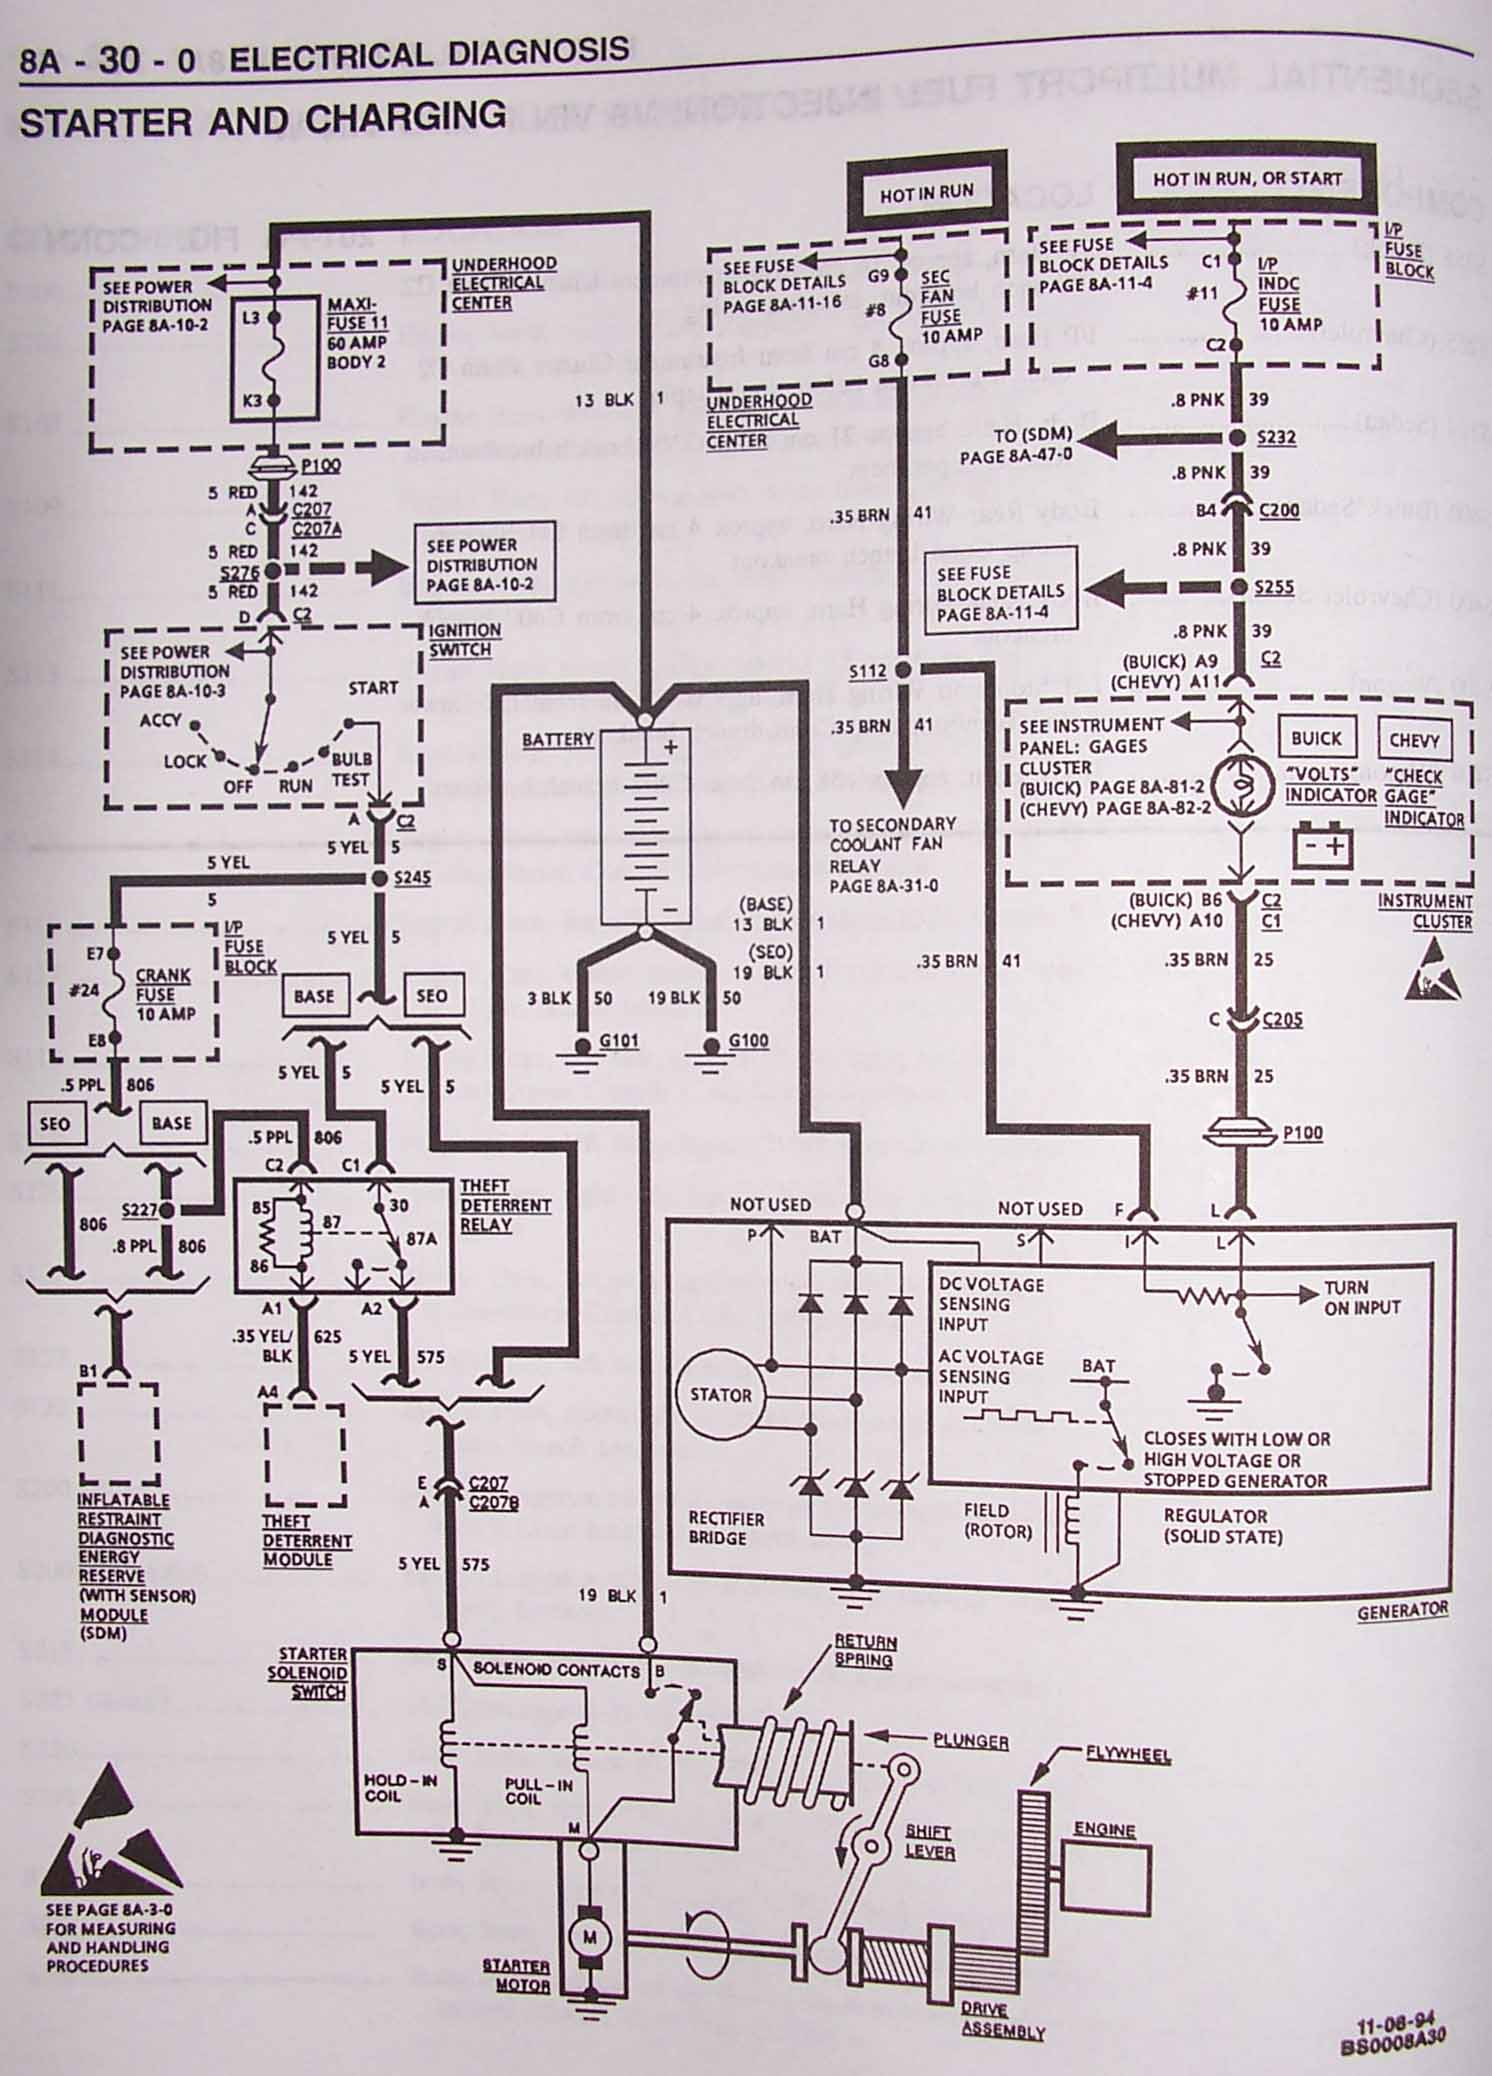 Roadmaster Engine Diagram Archive Of Automotive Wiring 95 Buick Riviera Impala Fuse Schematics Rh Thyl Co Uk 1995